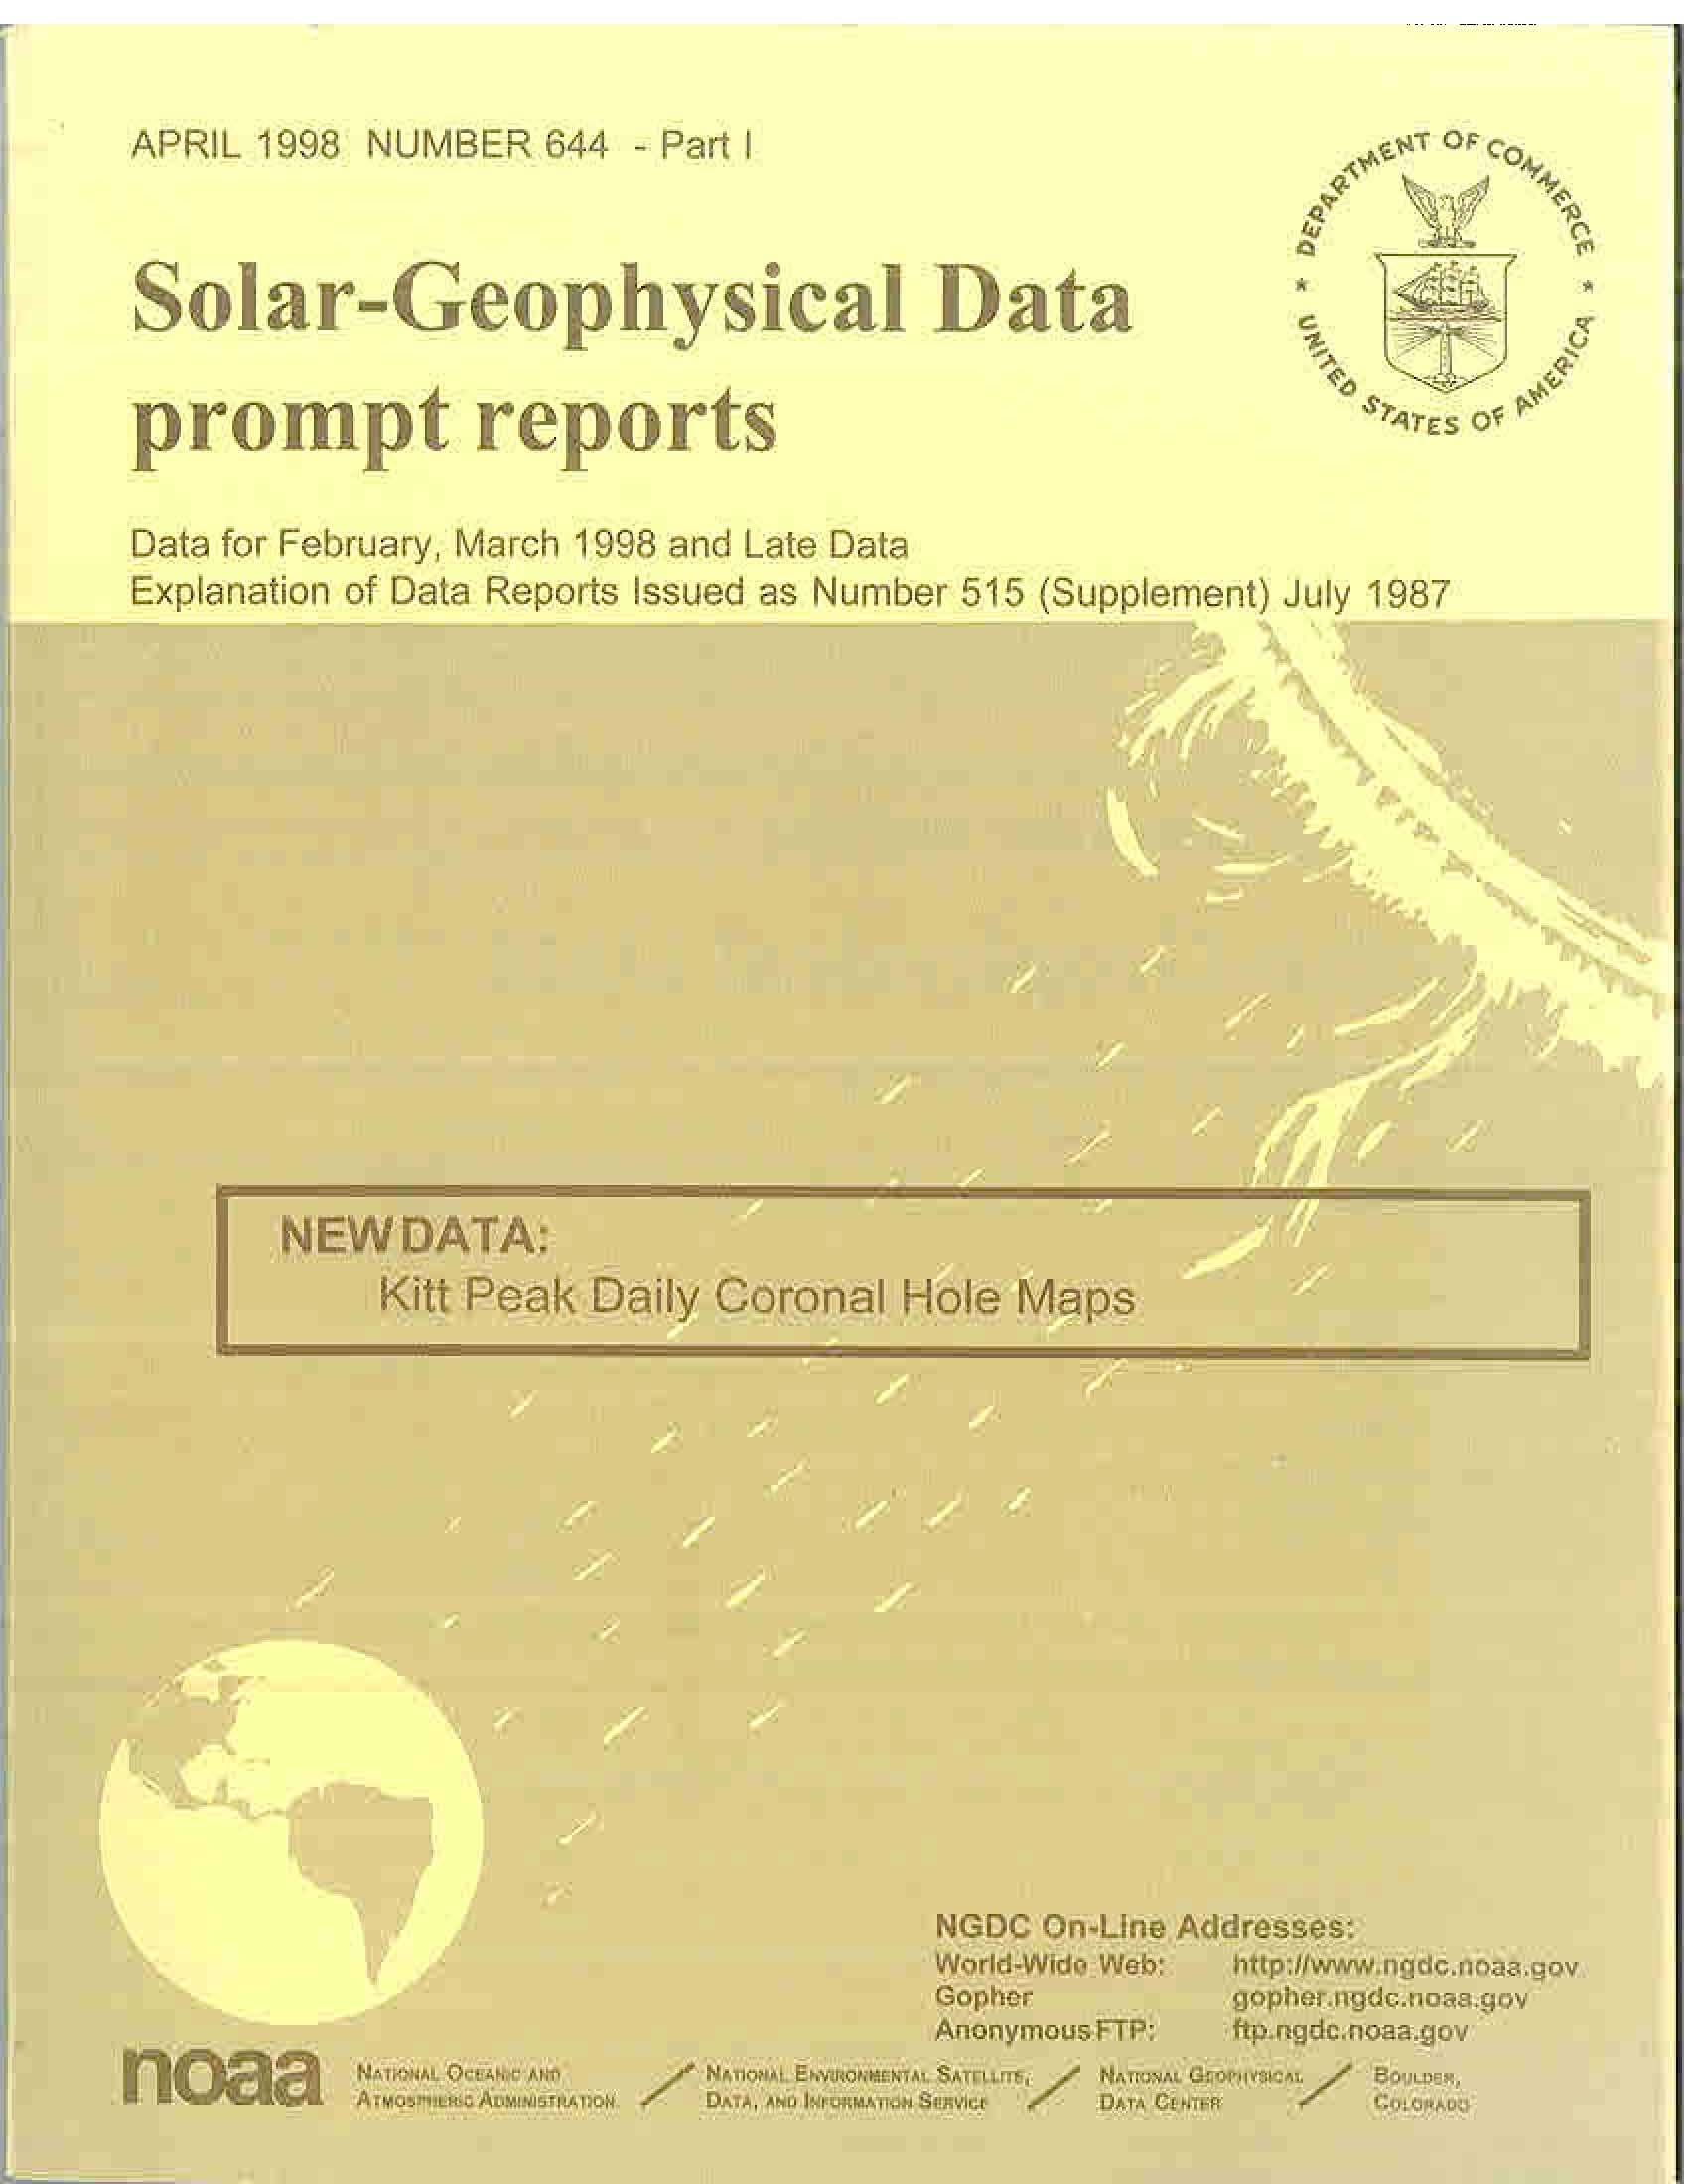 Solar Geophysical Data image